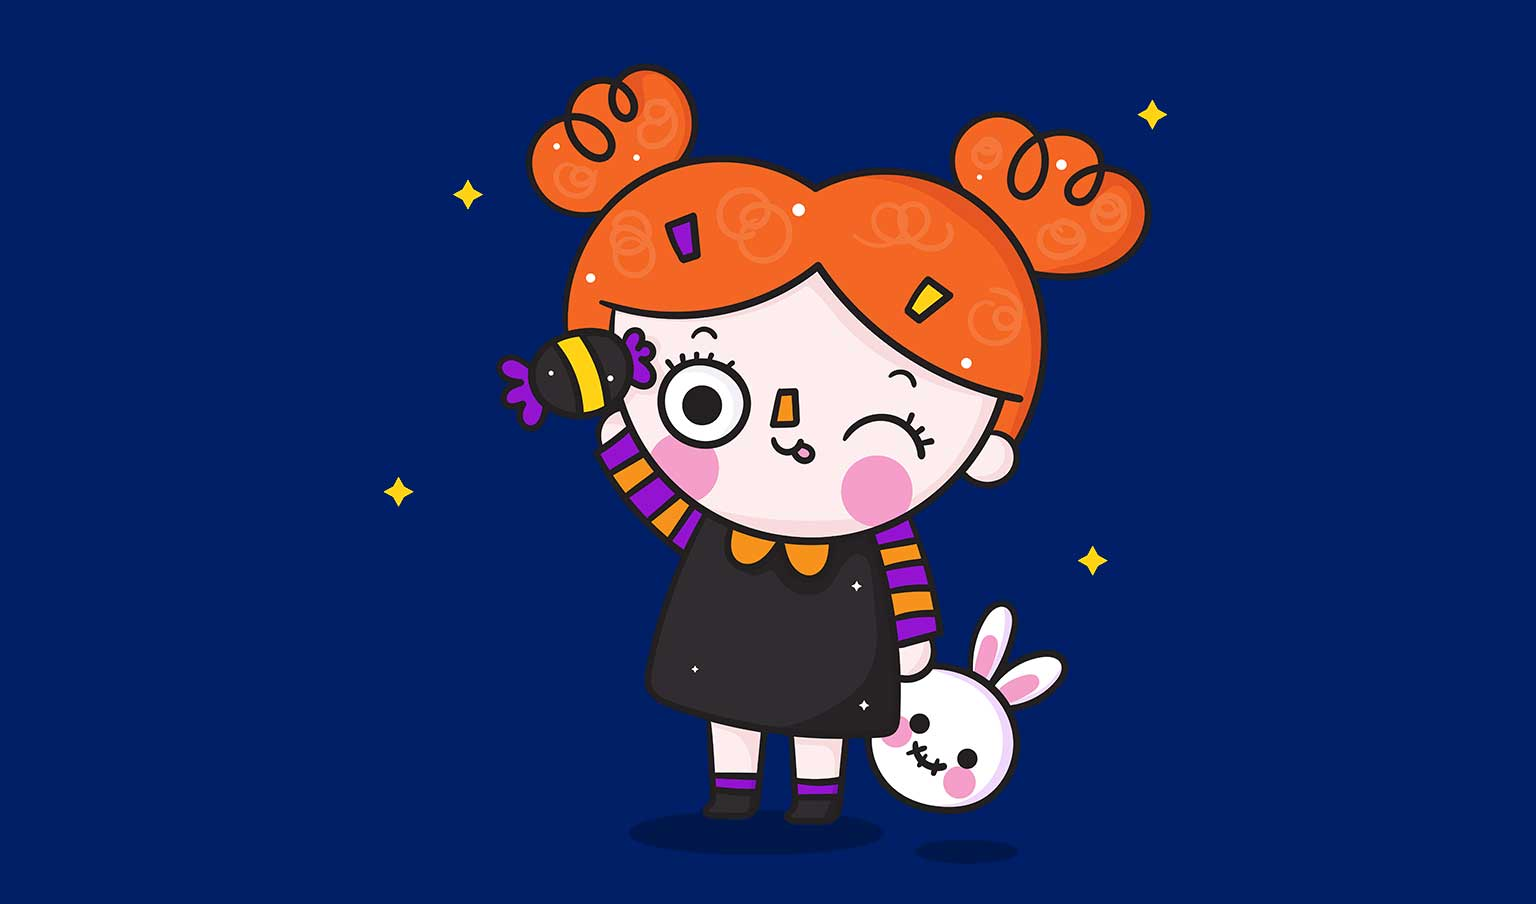 Halloween 2020 safety-cute cartoon girl with red hair holding candy